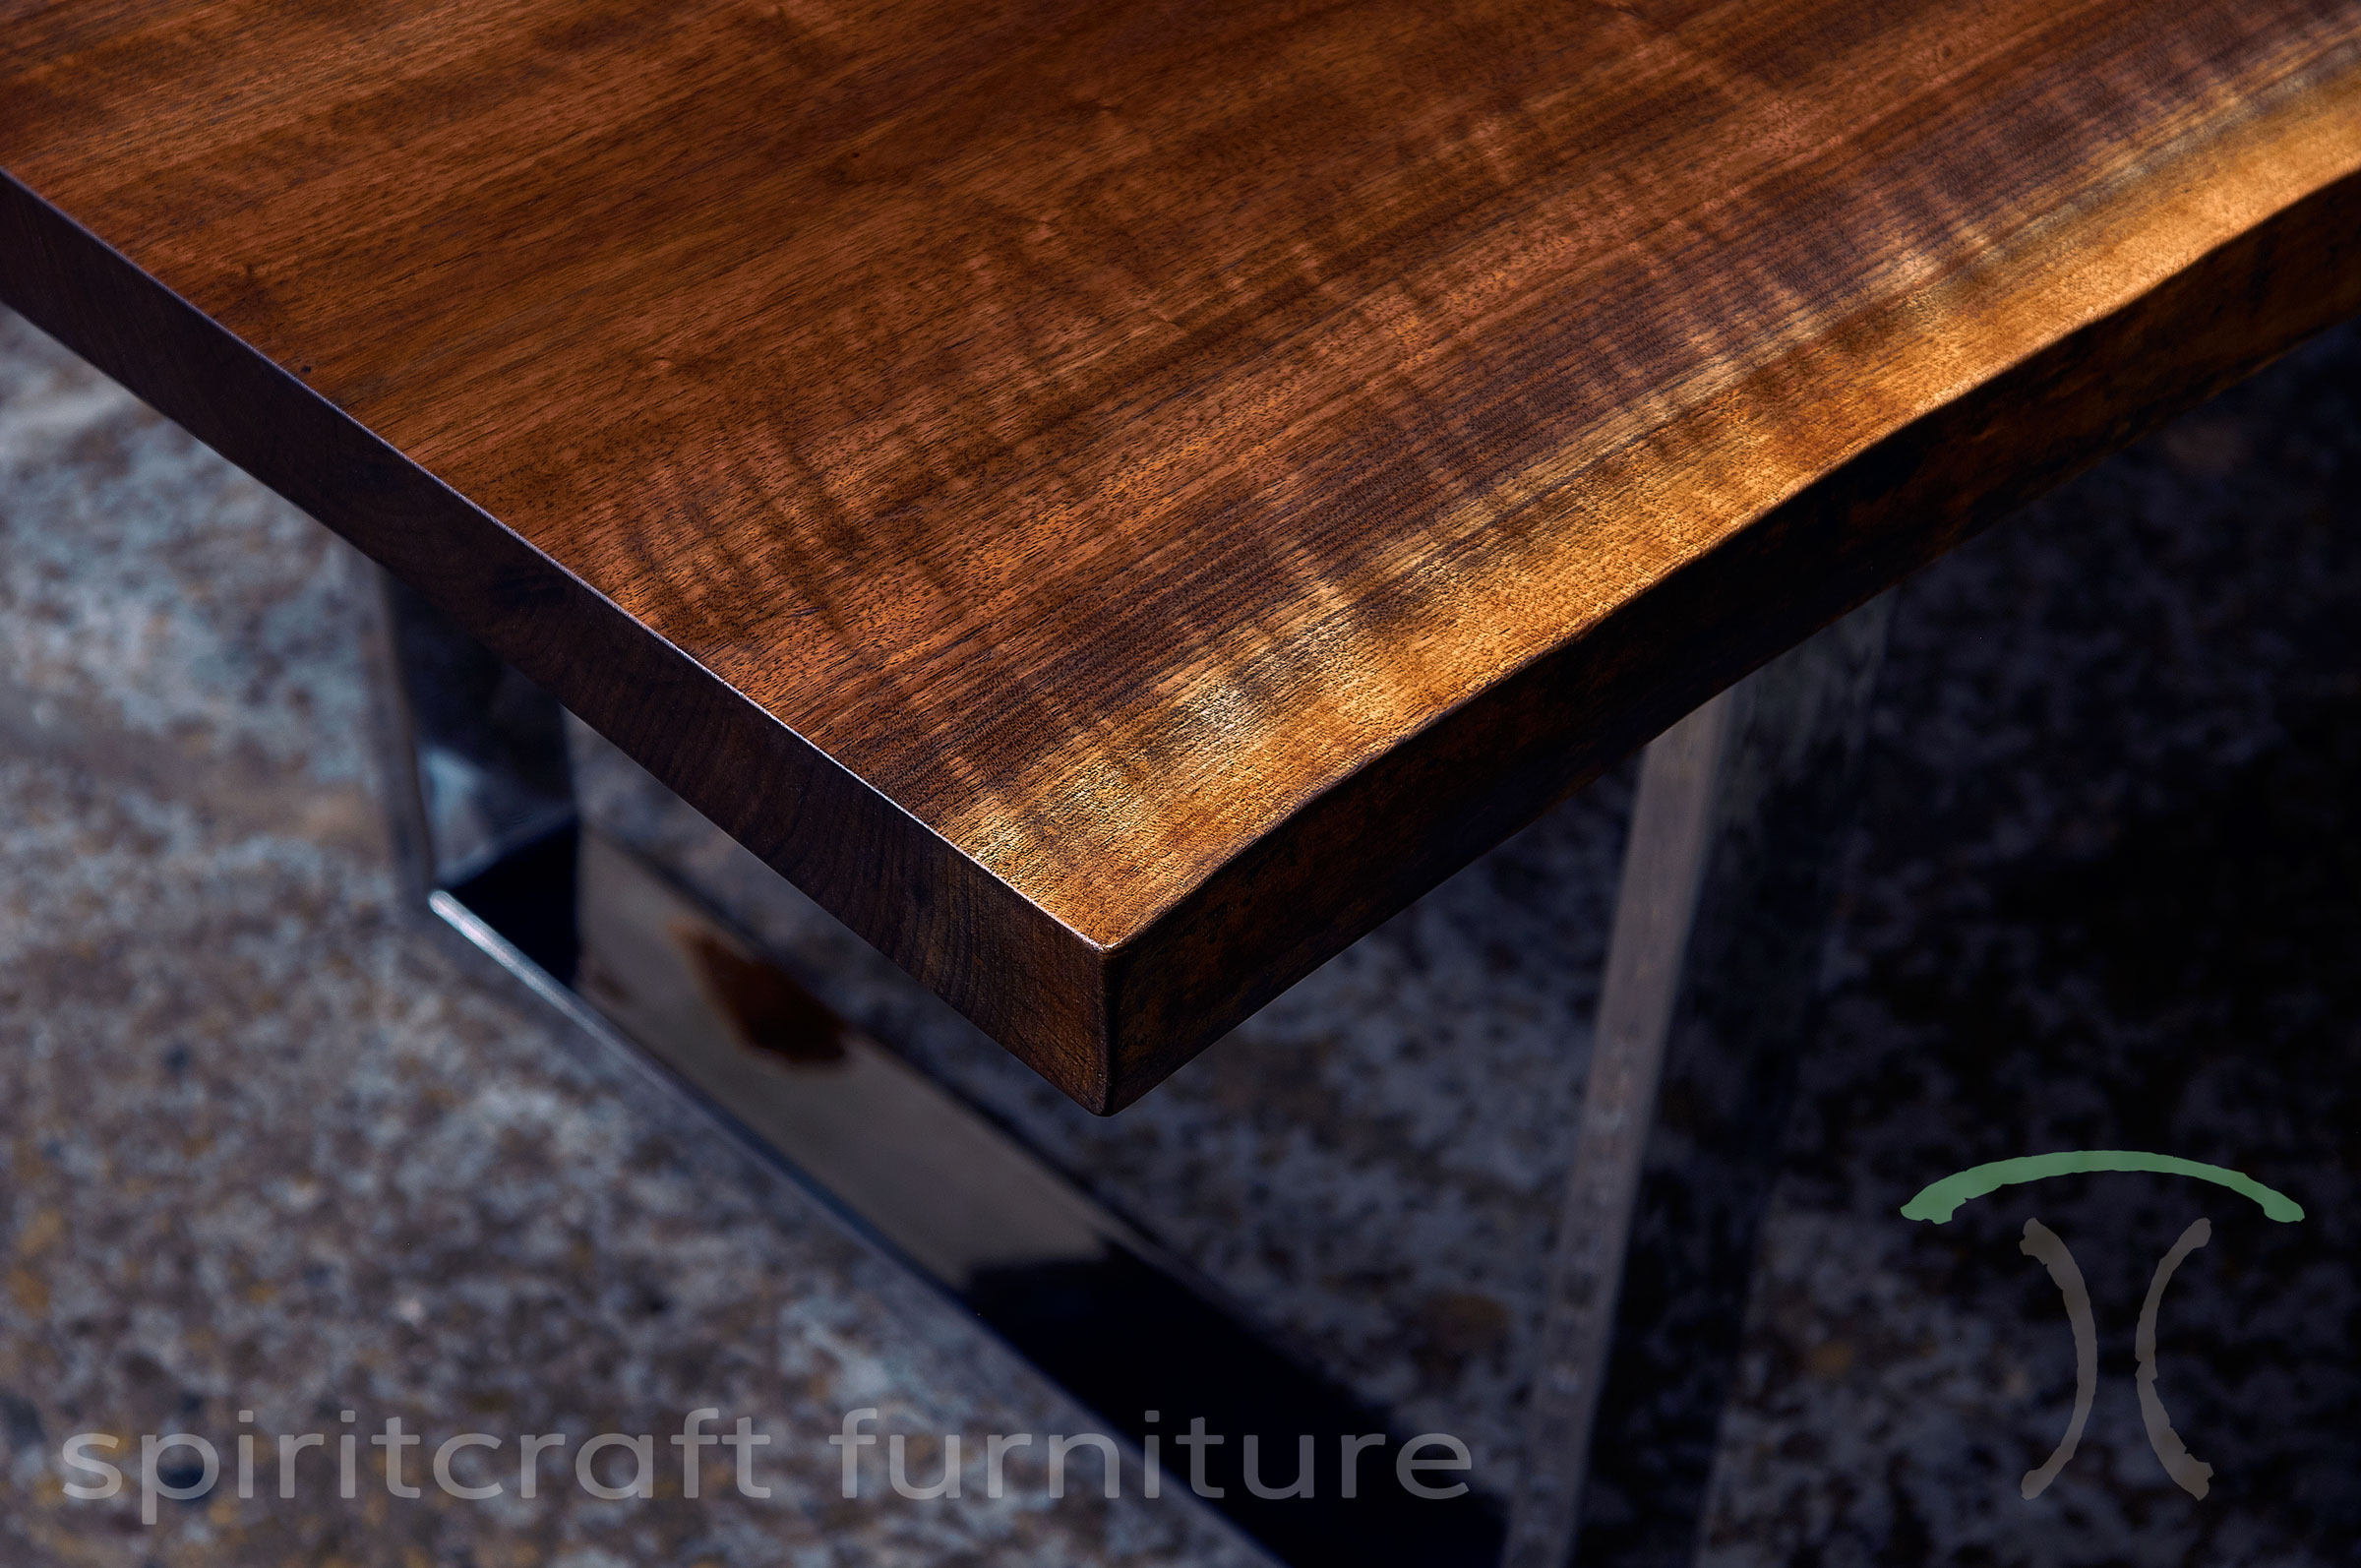 Solid hardwood live edge walnut conference table with polished stainless legs for Chicago client by Spiritcraft Design Furnitue in East Dundee, Illinois